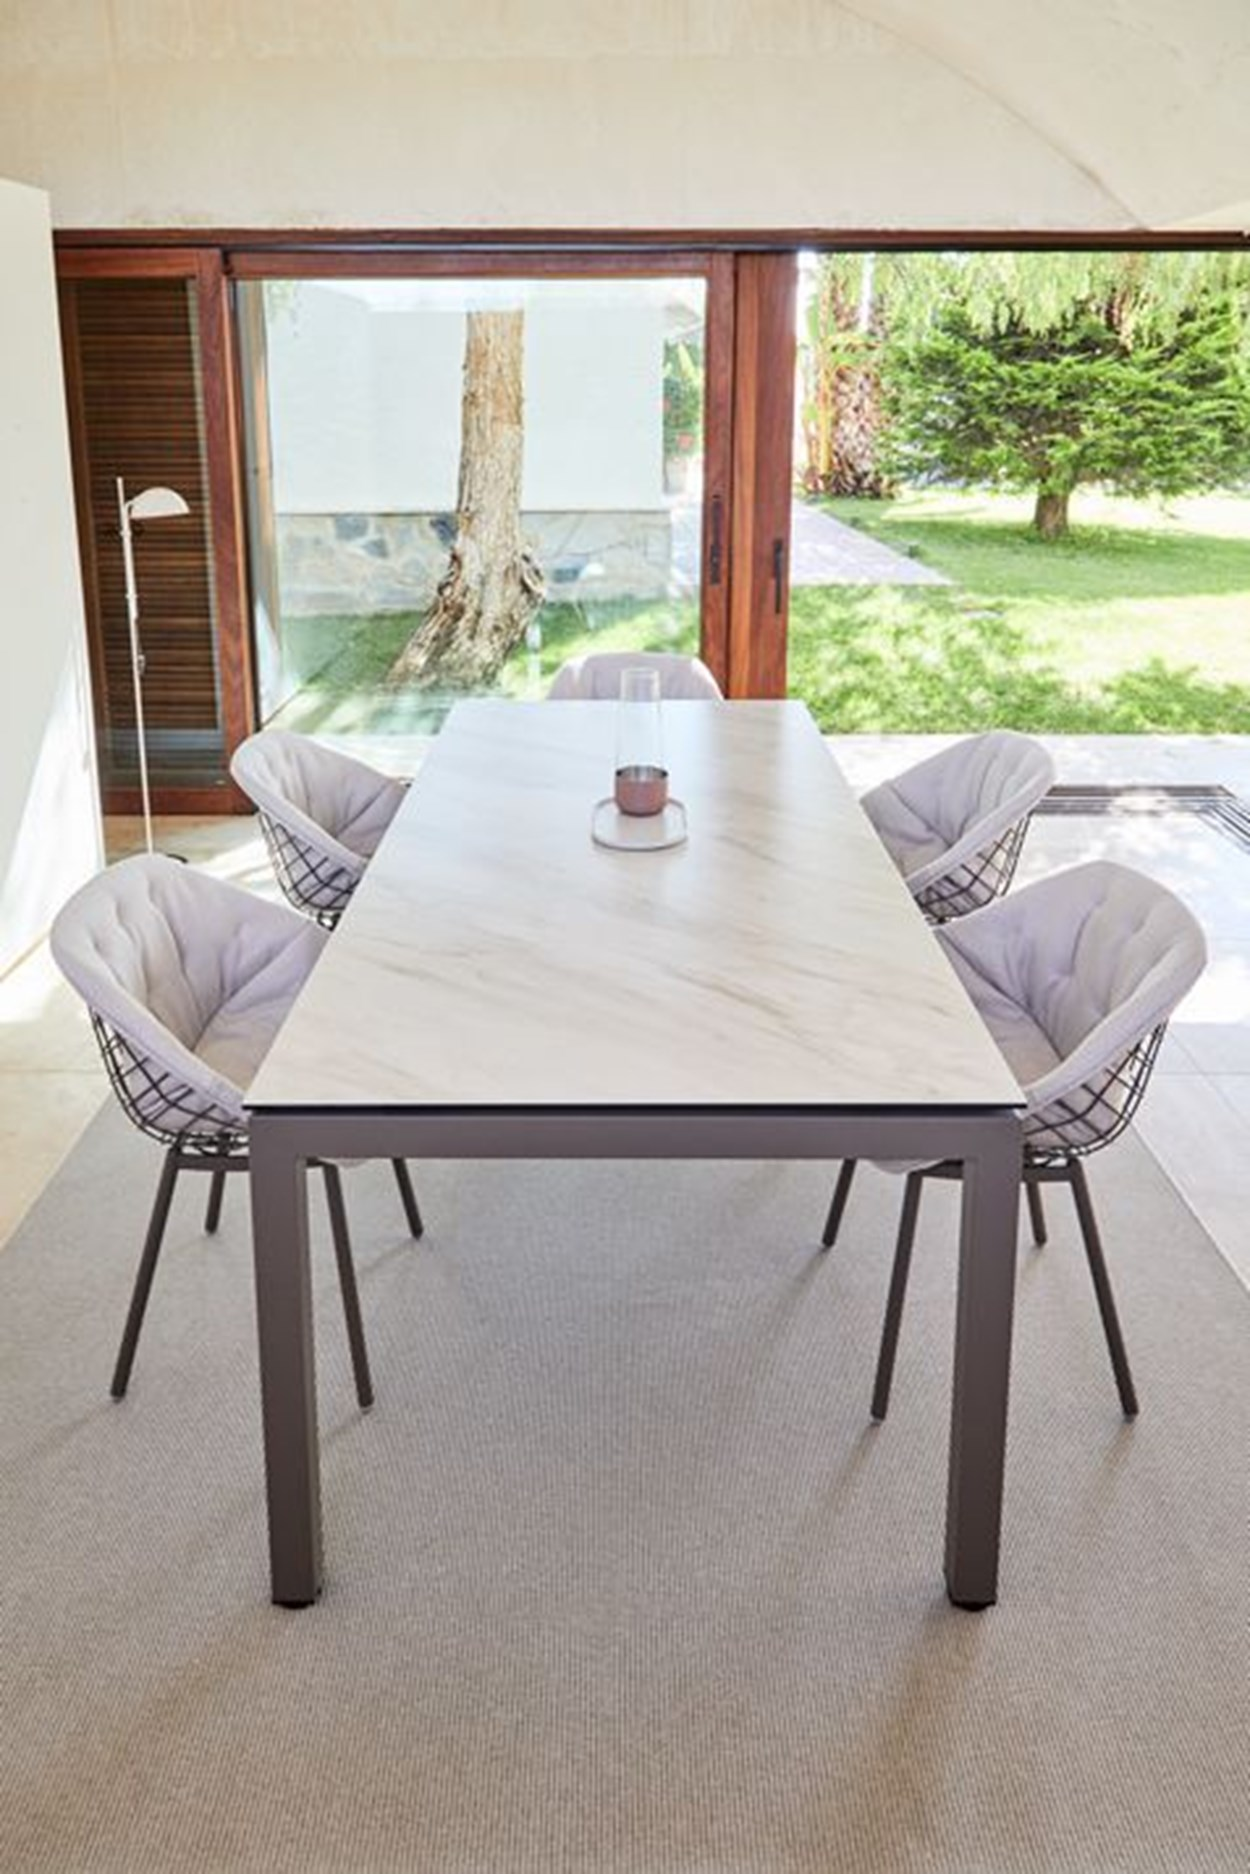 musola-salvia-dining-table-01.jpg